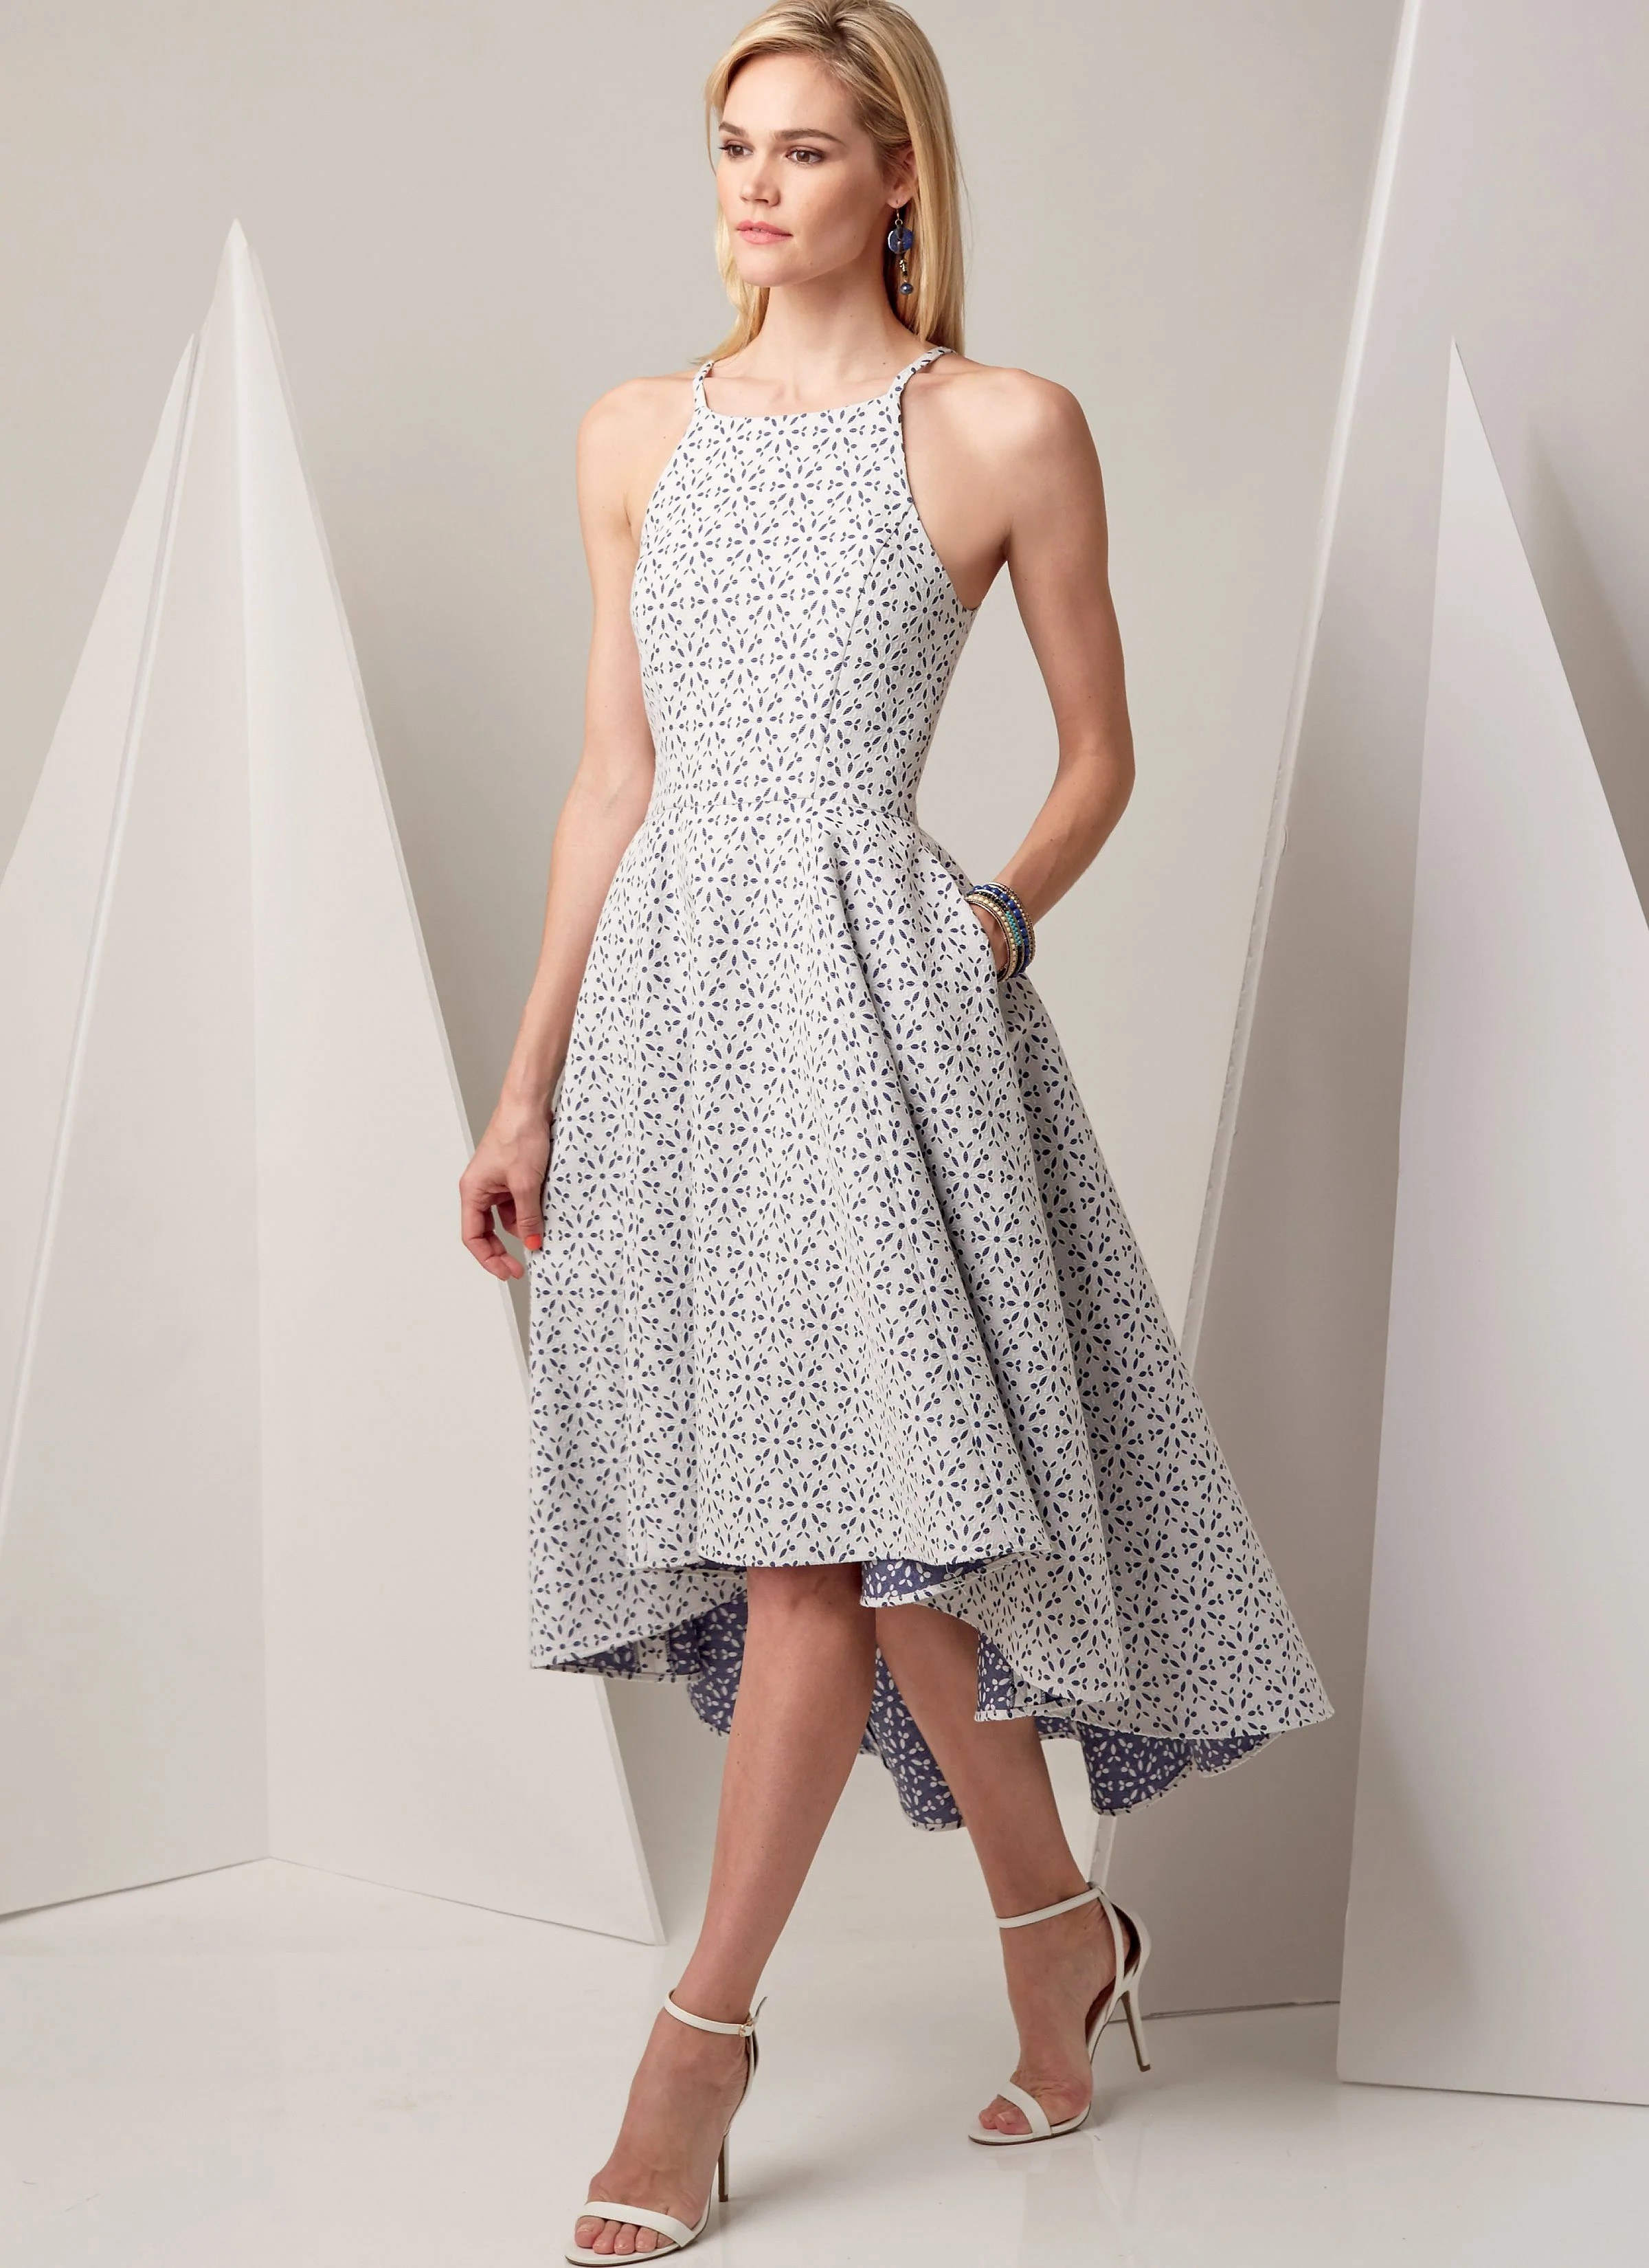 Alluring Sleeves Full Dresses Pockets Pockets Dresses Pockets Pack Wholesale Unit Dress Pockets Sewing Supplies Dress wedding dress Dress With Pockets